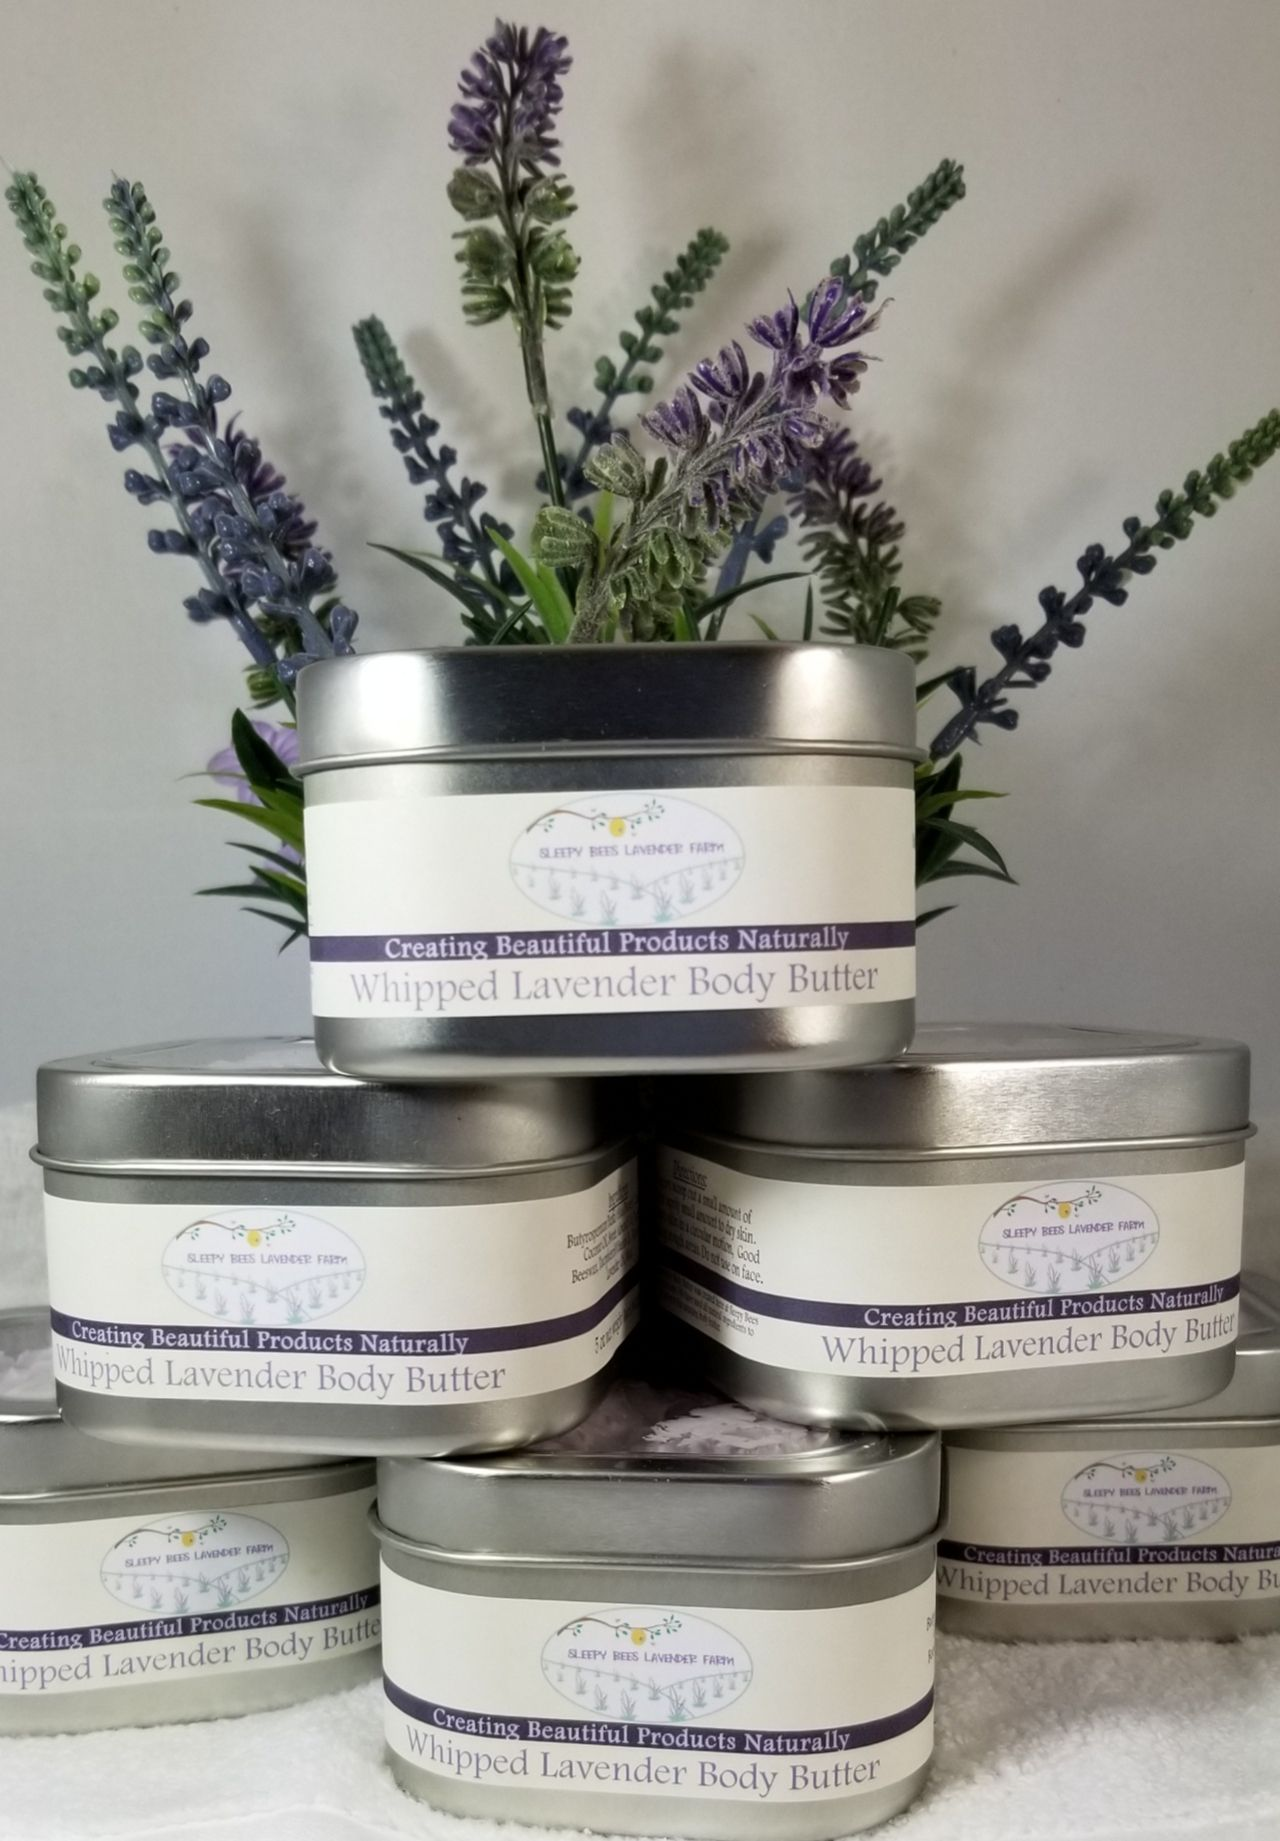 Our Lavender Whipped Body Butter is a decadent blend of